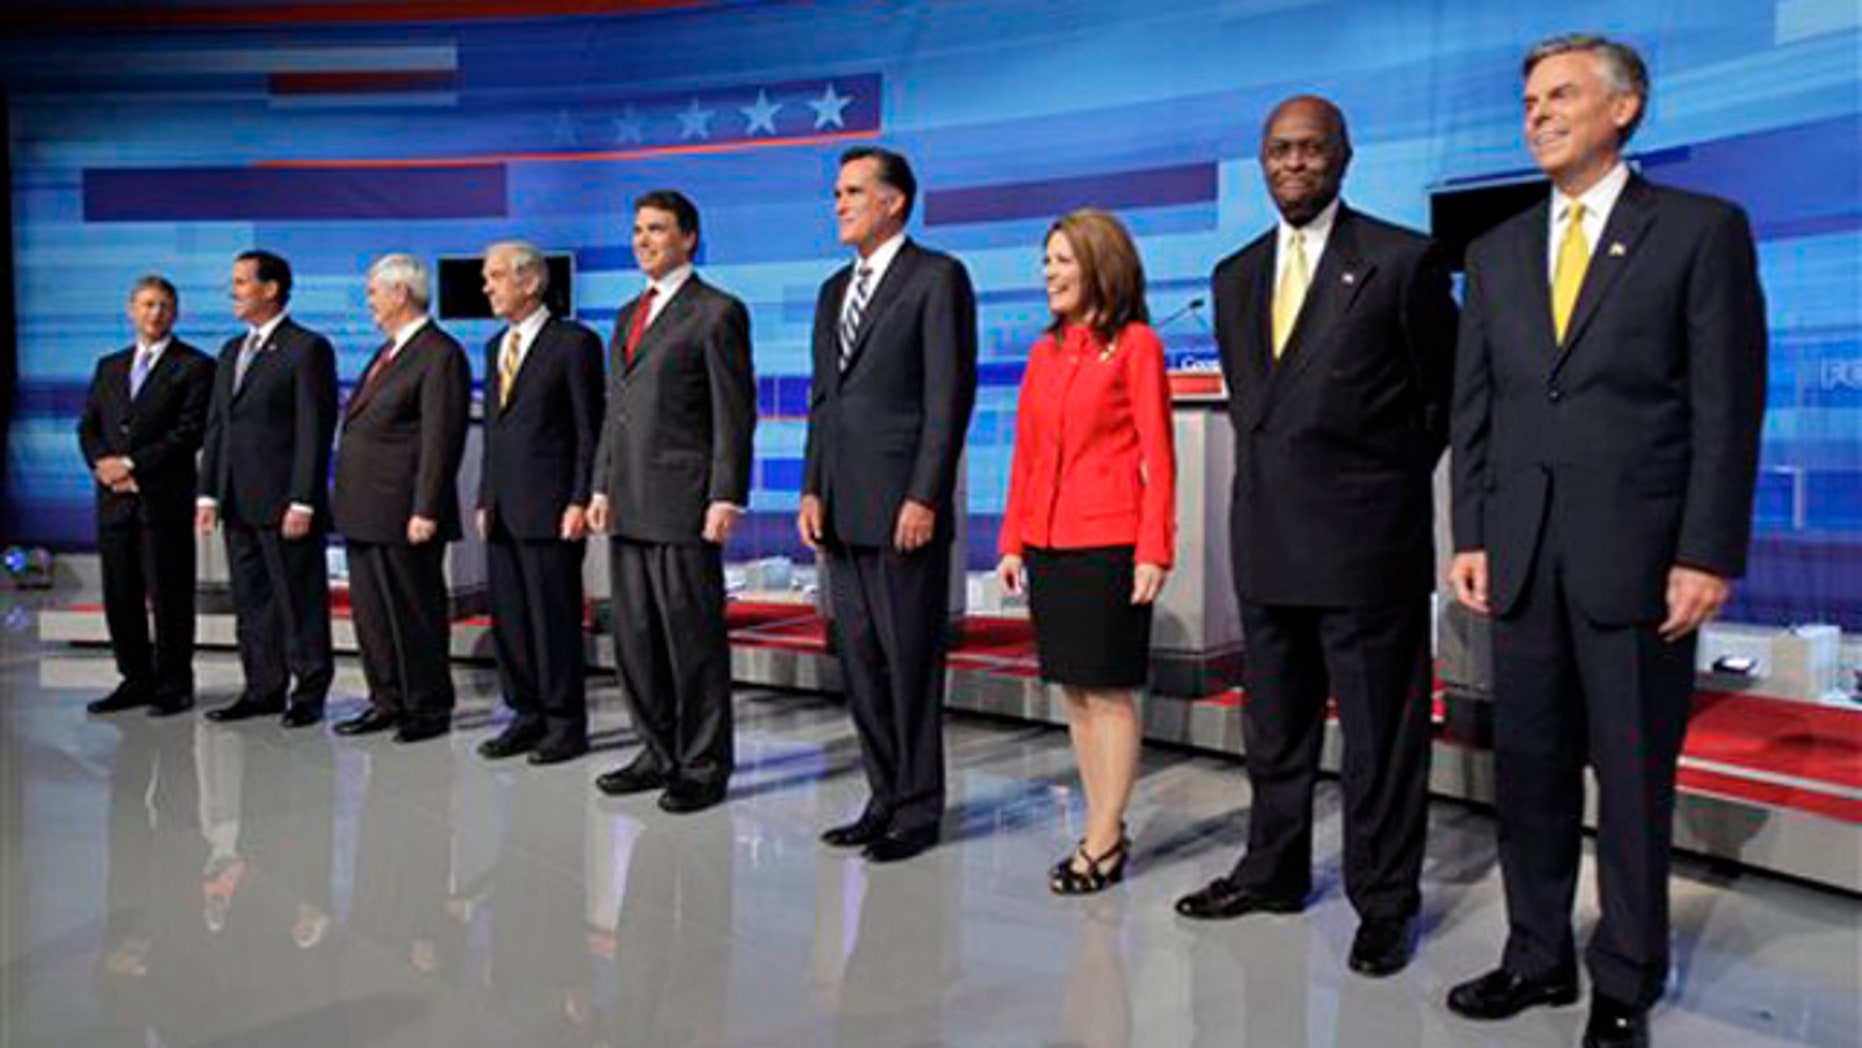 September 22: Republican candidates gather prior to a debate in Orlando, Fla.